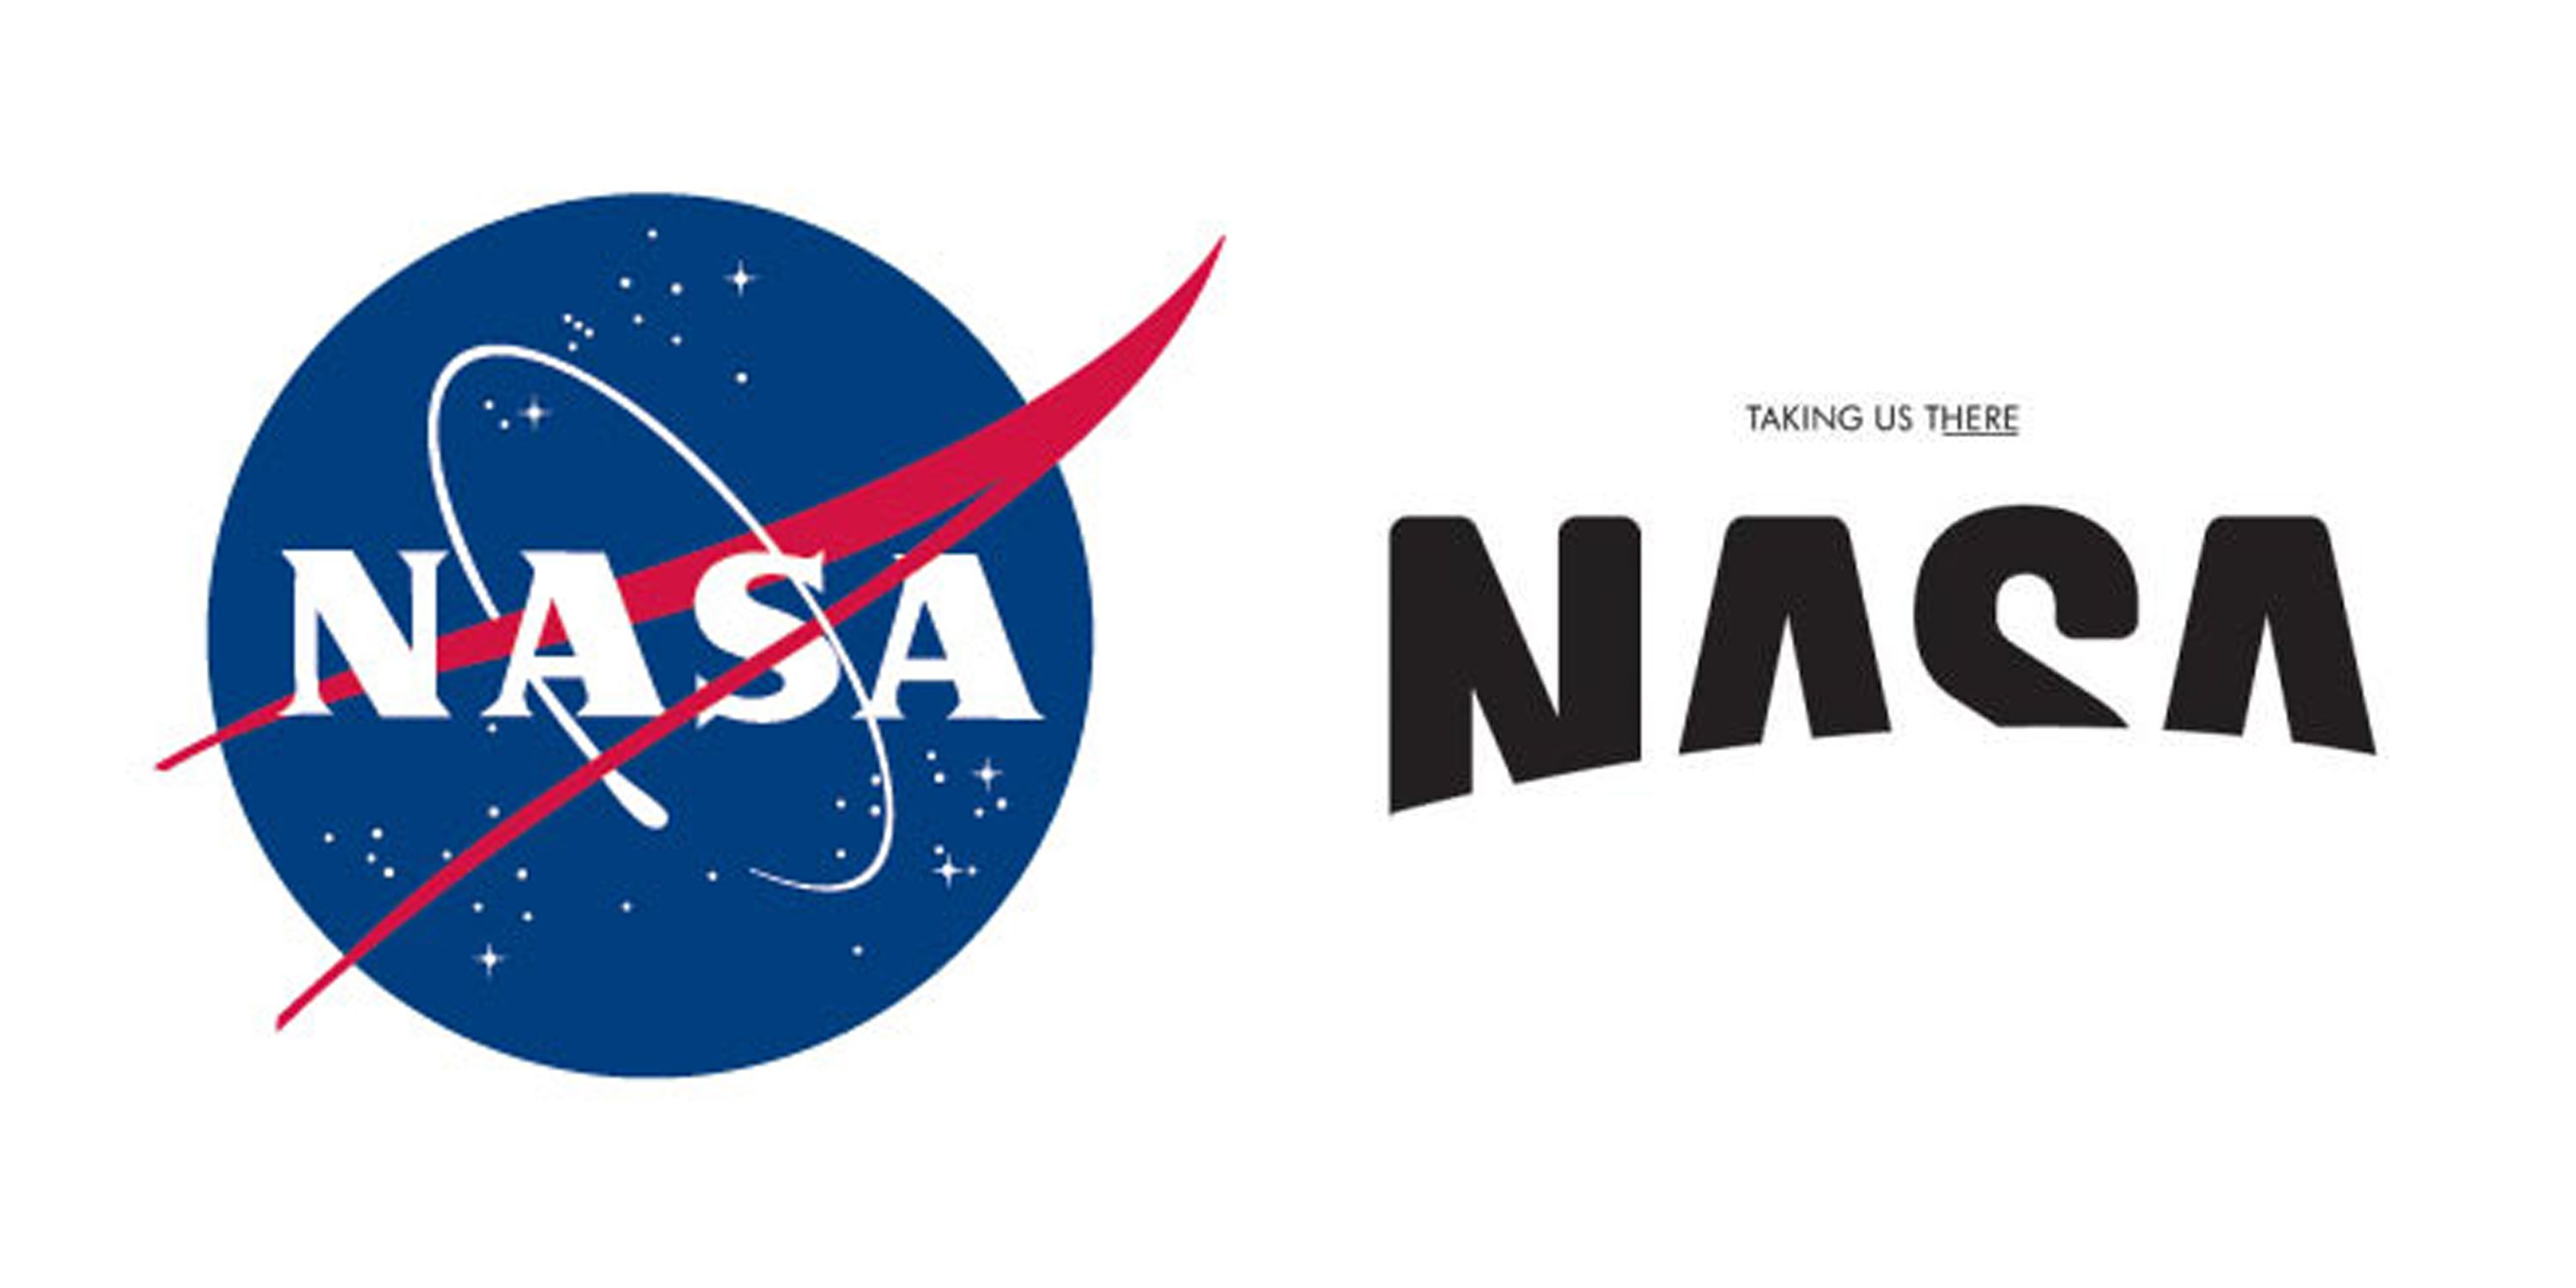 A redesign of the NASA logo done by Base Design Firm